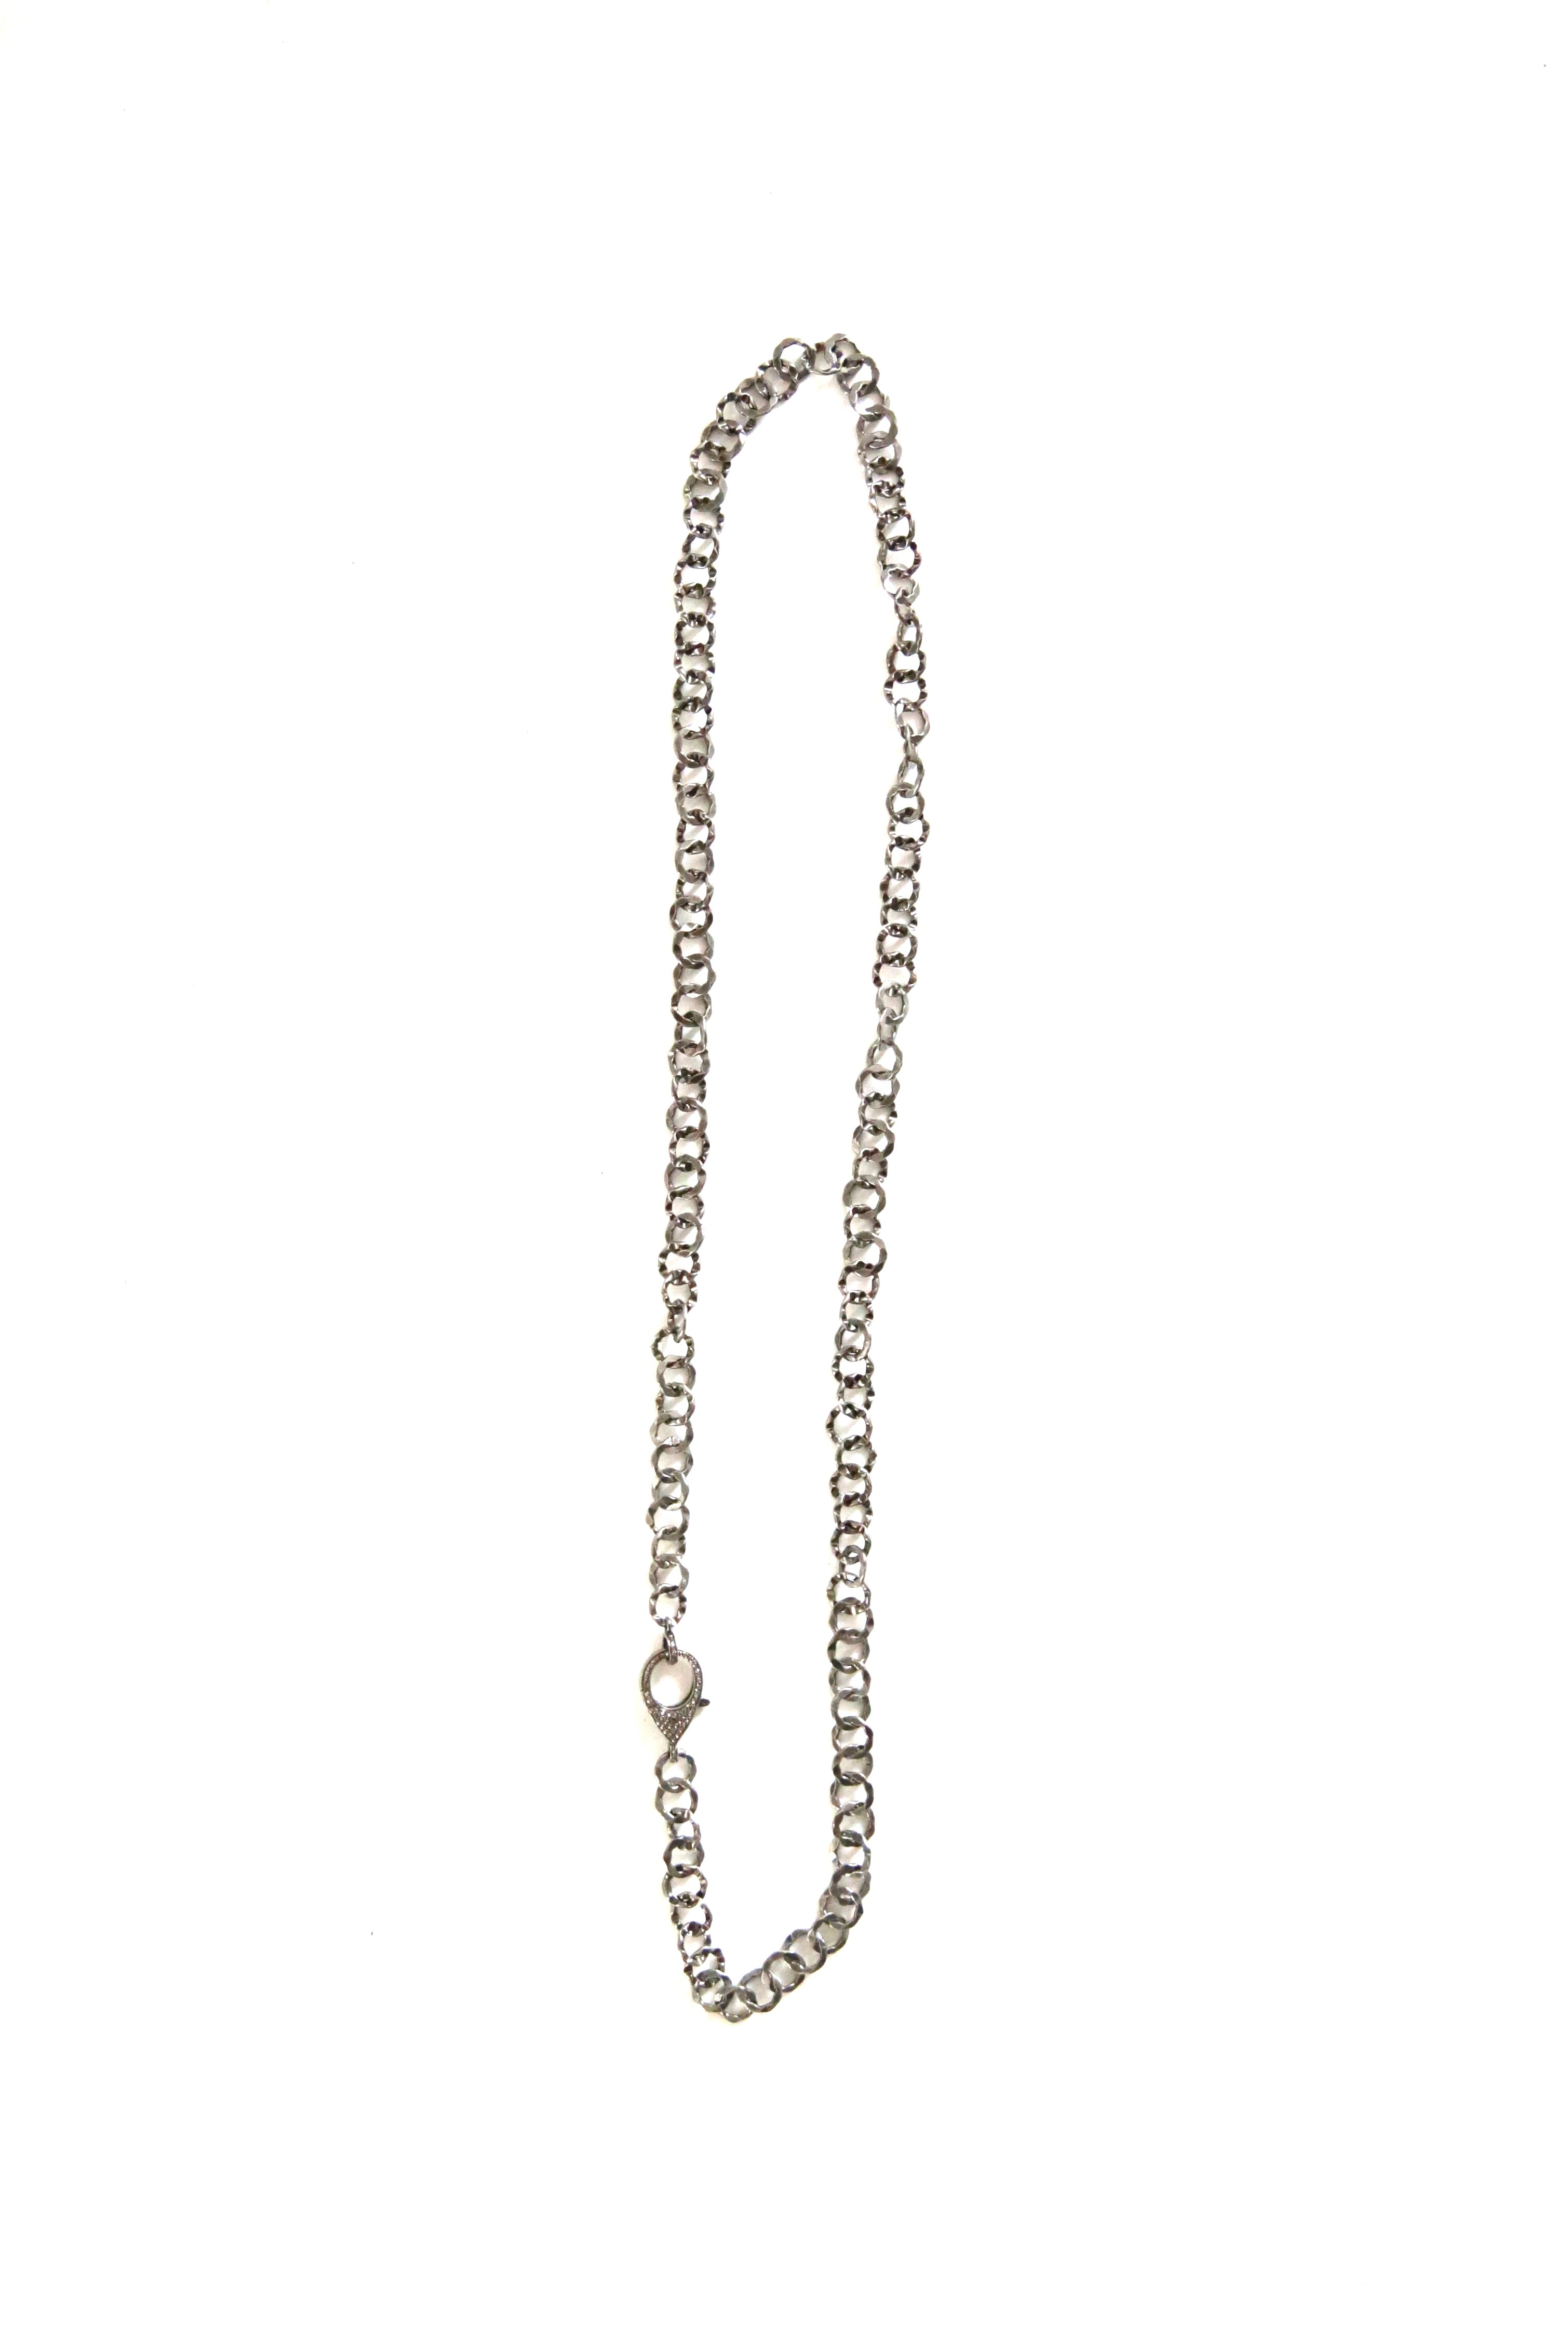 hammered silver chain - 33""